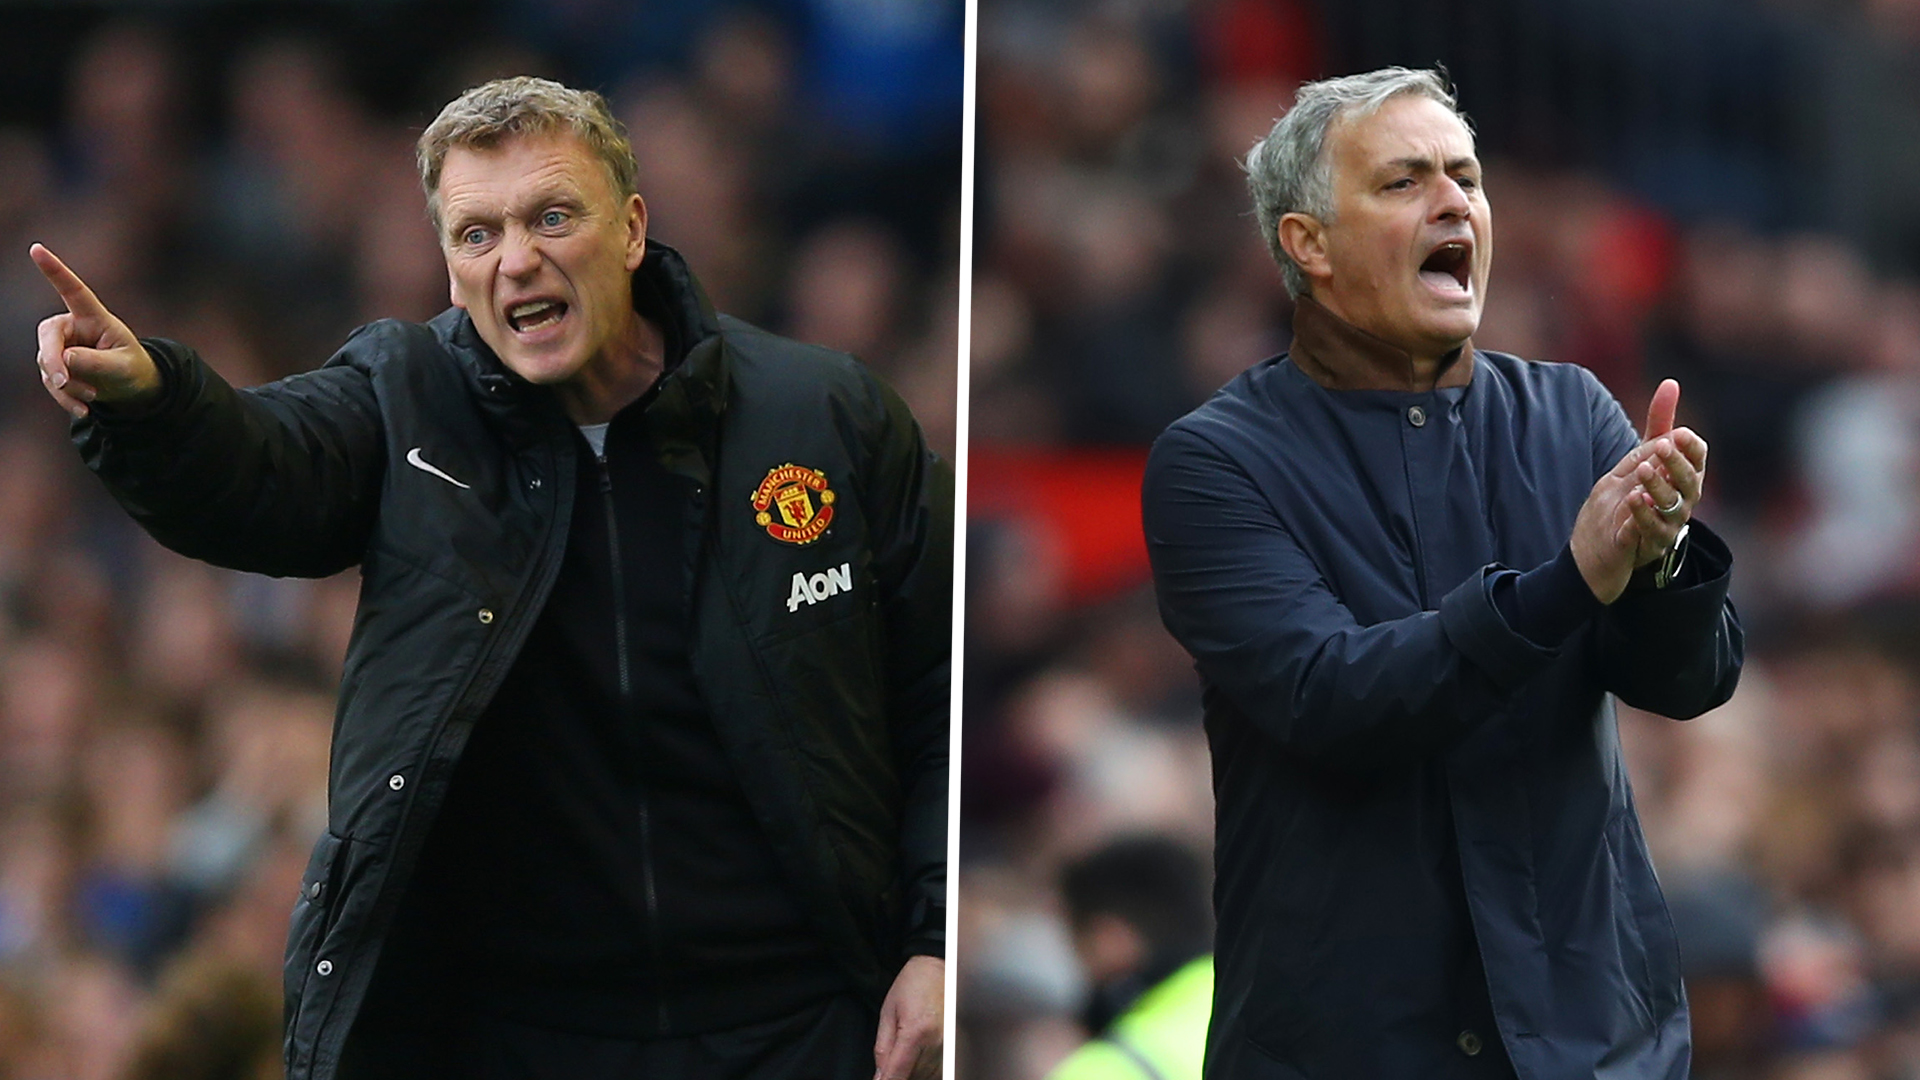 Moyes v Mourinho: How do the two managers compare at Manchester United?